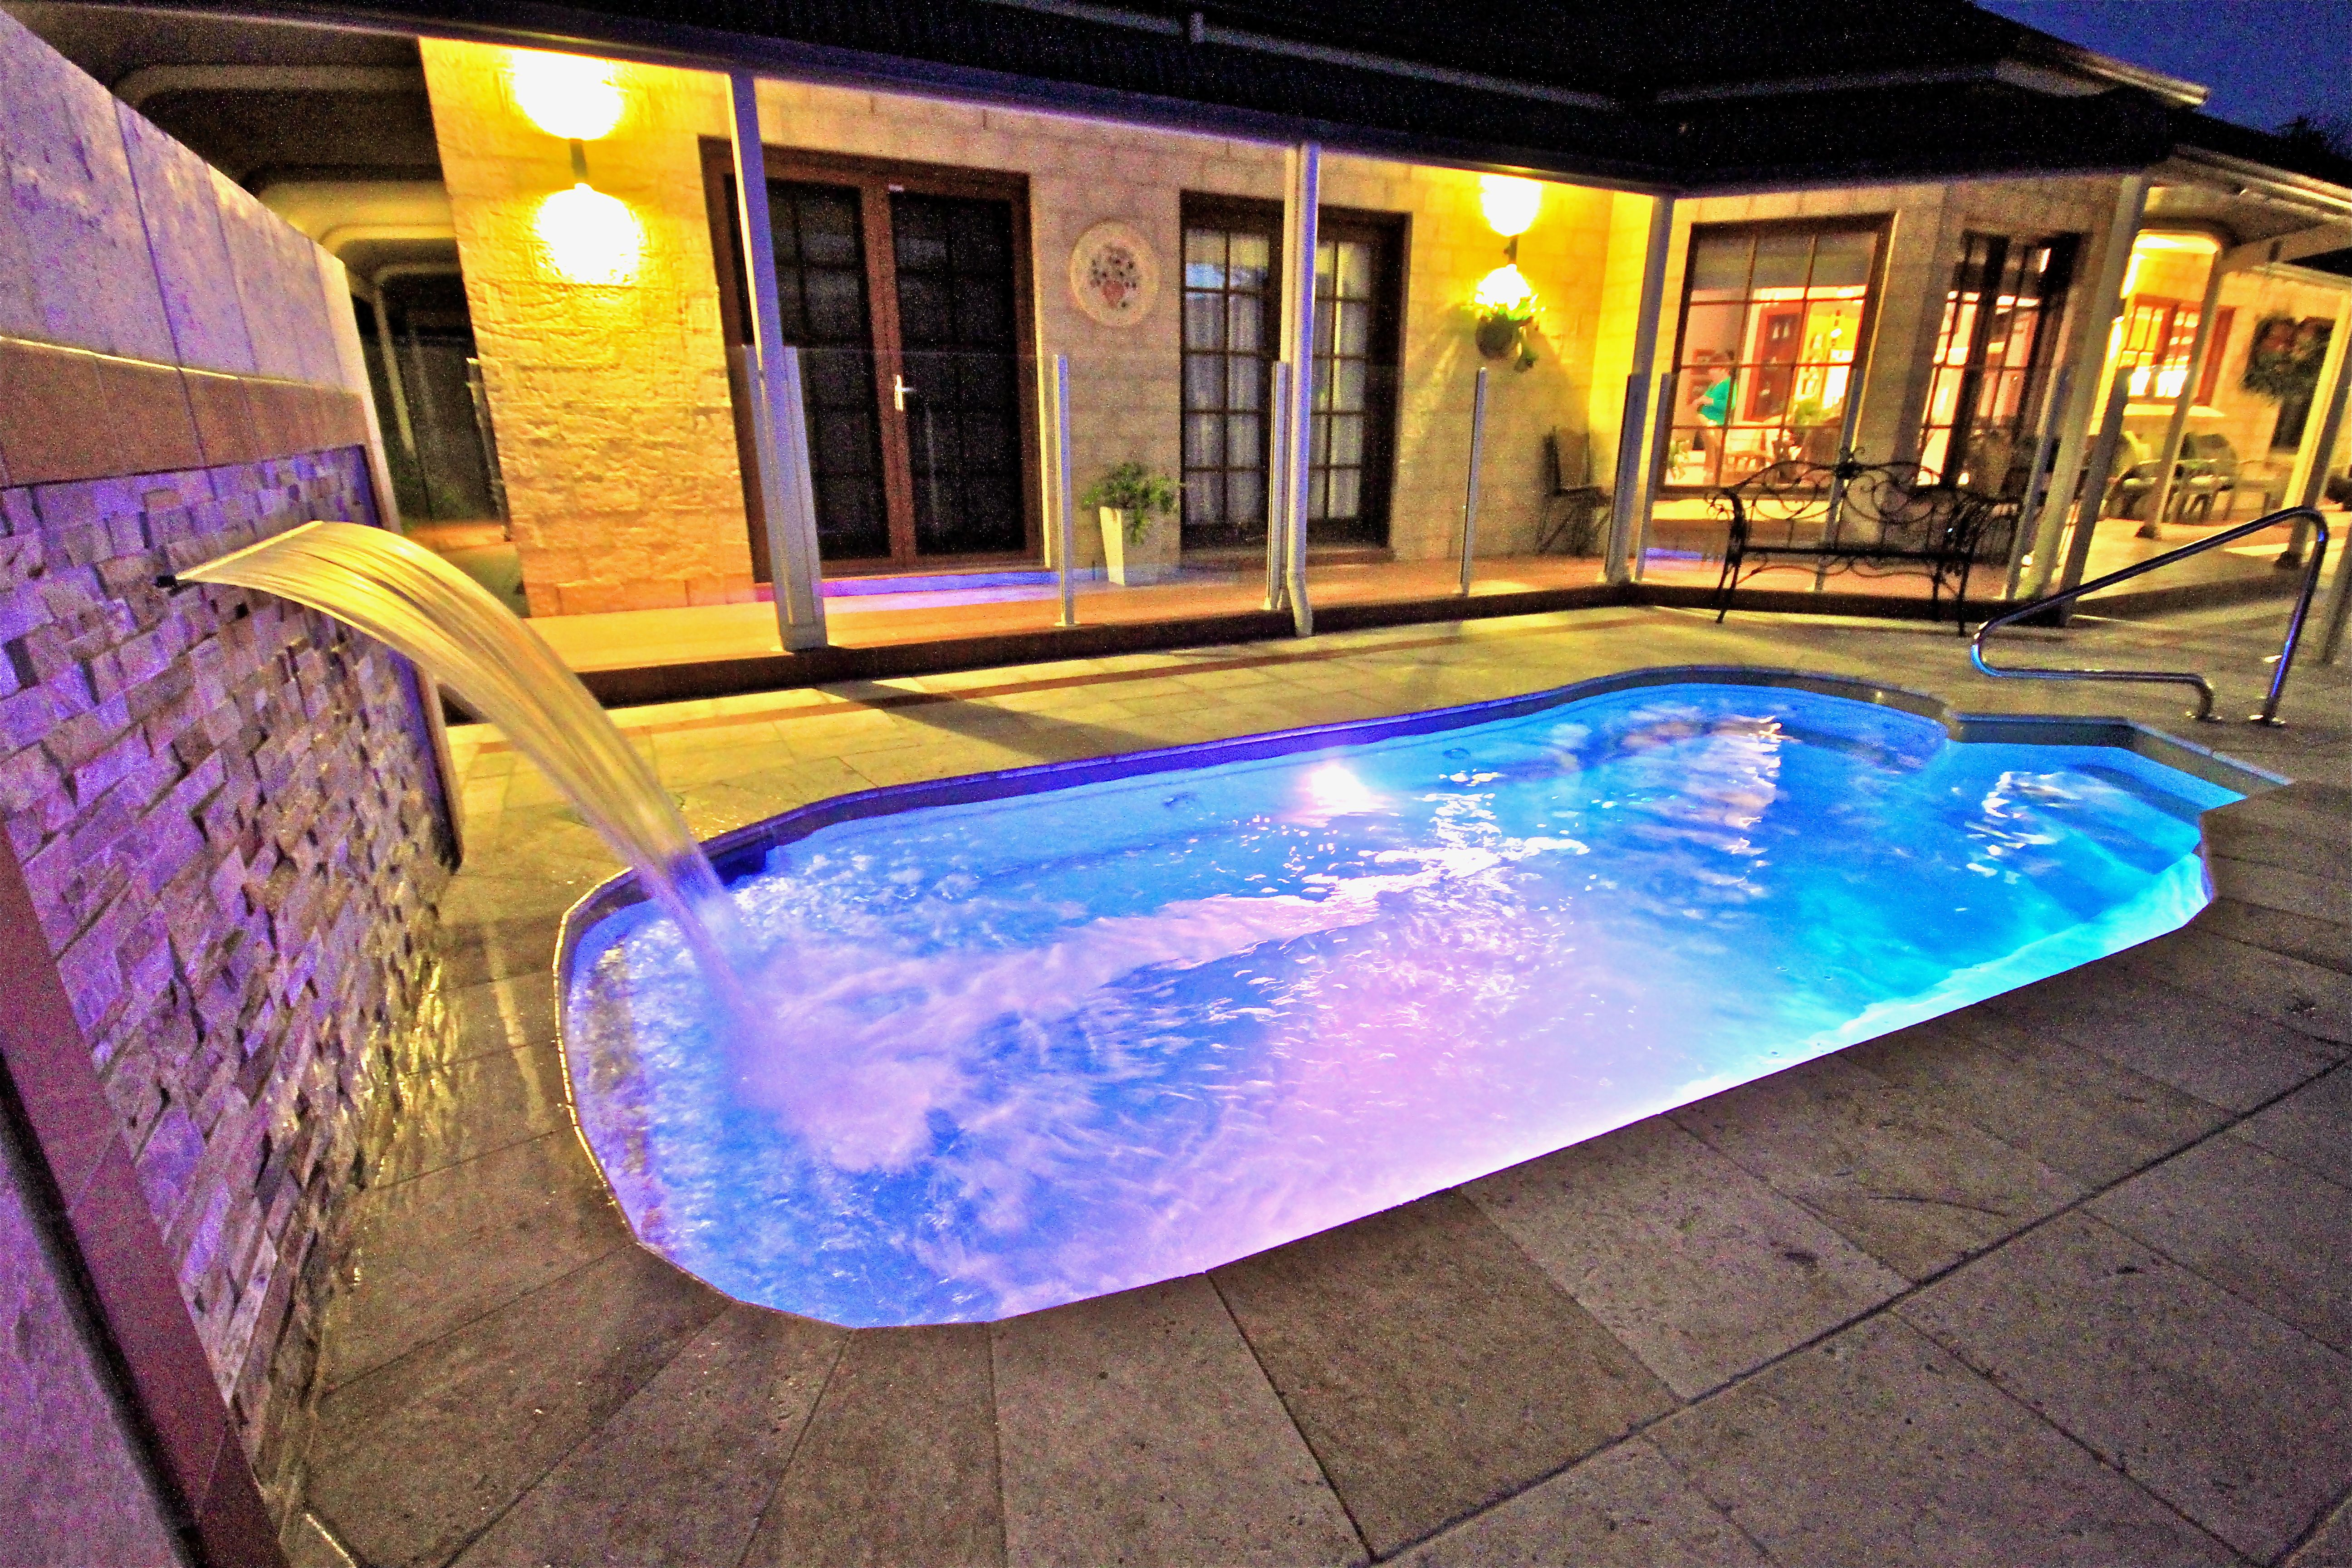 capri plunge pool the distinctive shape of the narellan pools capri plunge pool offers a contemporary